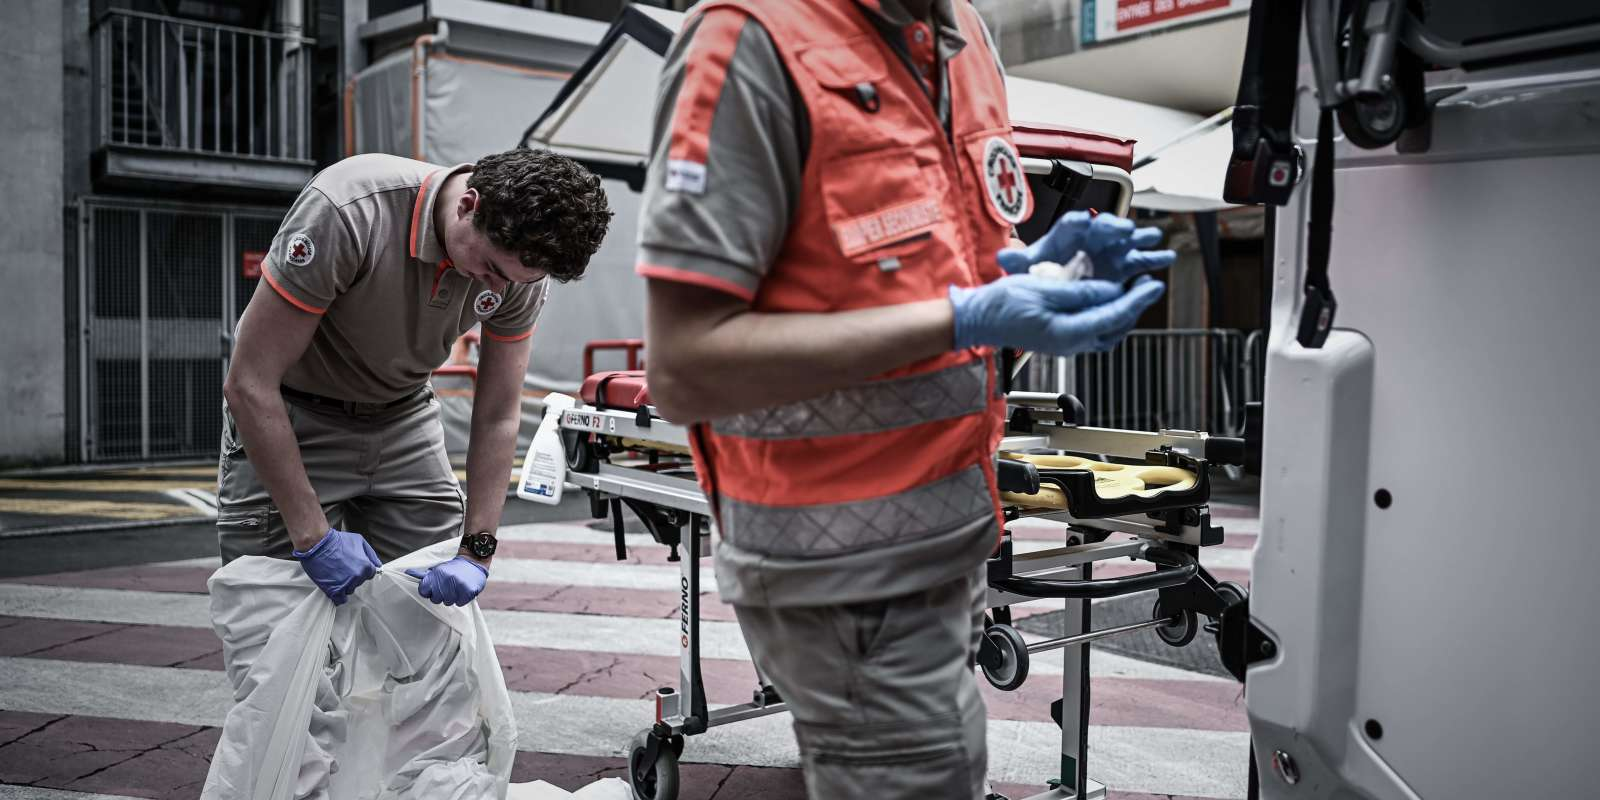 A Red Cross volunteer removes a protective suit outside an hospital after an intervention at the home of a woman with symptoms of Covid-19 during the Red Cross operations to enforce the SAMU (French Urgent Medical Aid Service) on May 5, 2020, in Paris, during the lockdown in France aimed at curbing the spread of the COVID-19 disease, caused by the novel coronavirus. / AFP / PHILIPPE LOPEZ